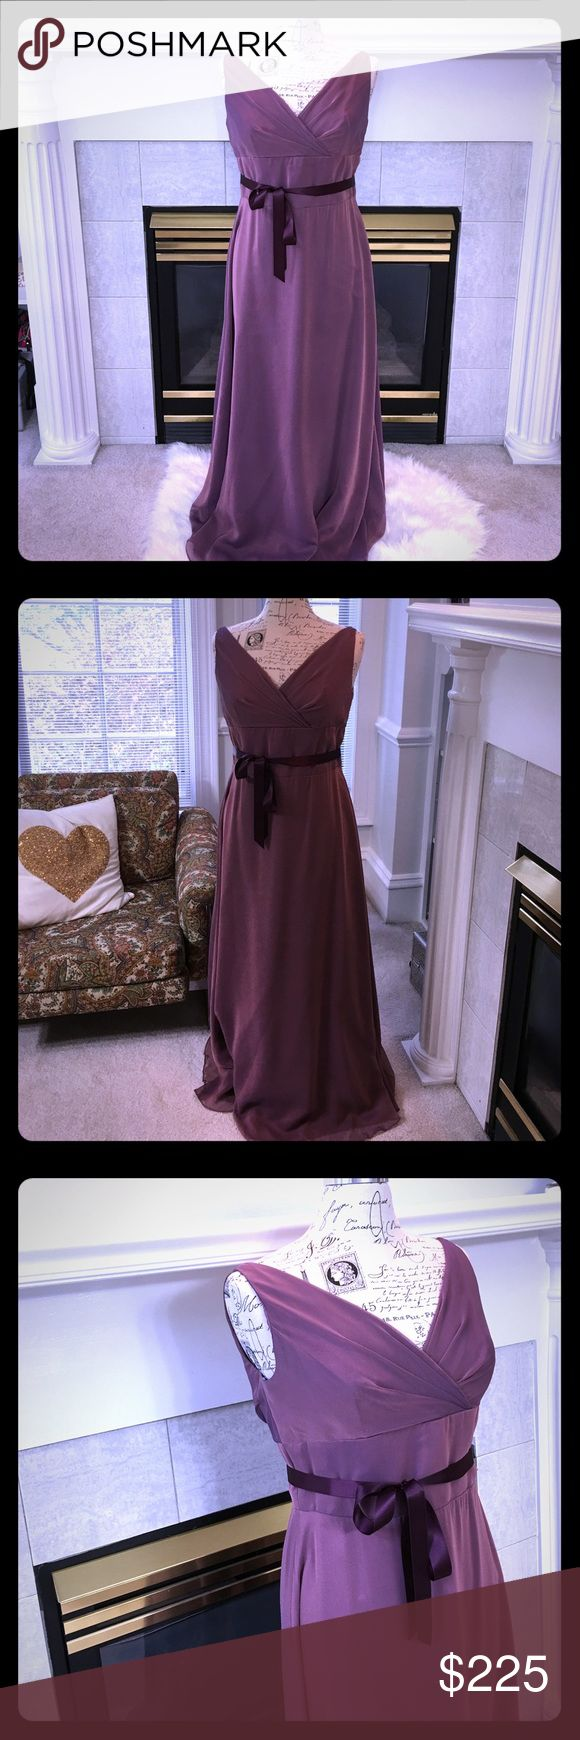 Jim Hjelm Occasions Mother of Bride dress  Sz 16 EUC. No odors, tears or stains. Mother of the bride evening gown in beautiful dusty purple shade with dark purple, removable sash. 💋 Jim Hjelm Dresses Wedding